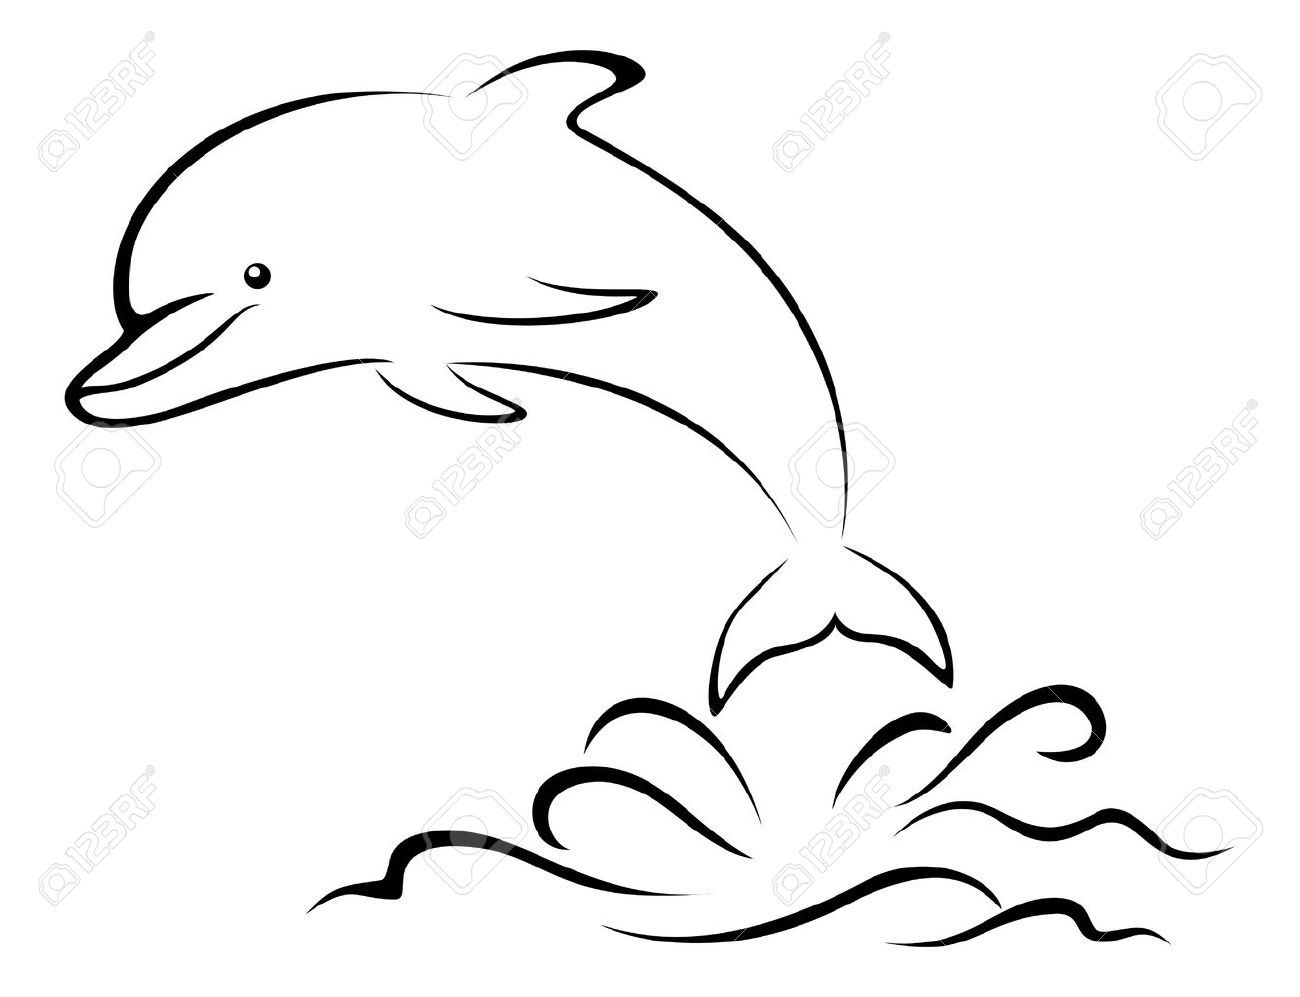 Cartoon Dolphin Jumping Over The Sea Waves Black Contours Pictogram Royalty Free Cliparts Vectors And Stock Illustrati Cartoon Dolphin Sea Waves Pictogram